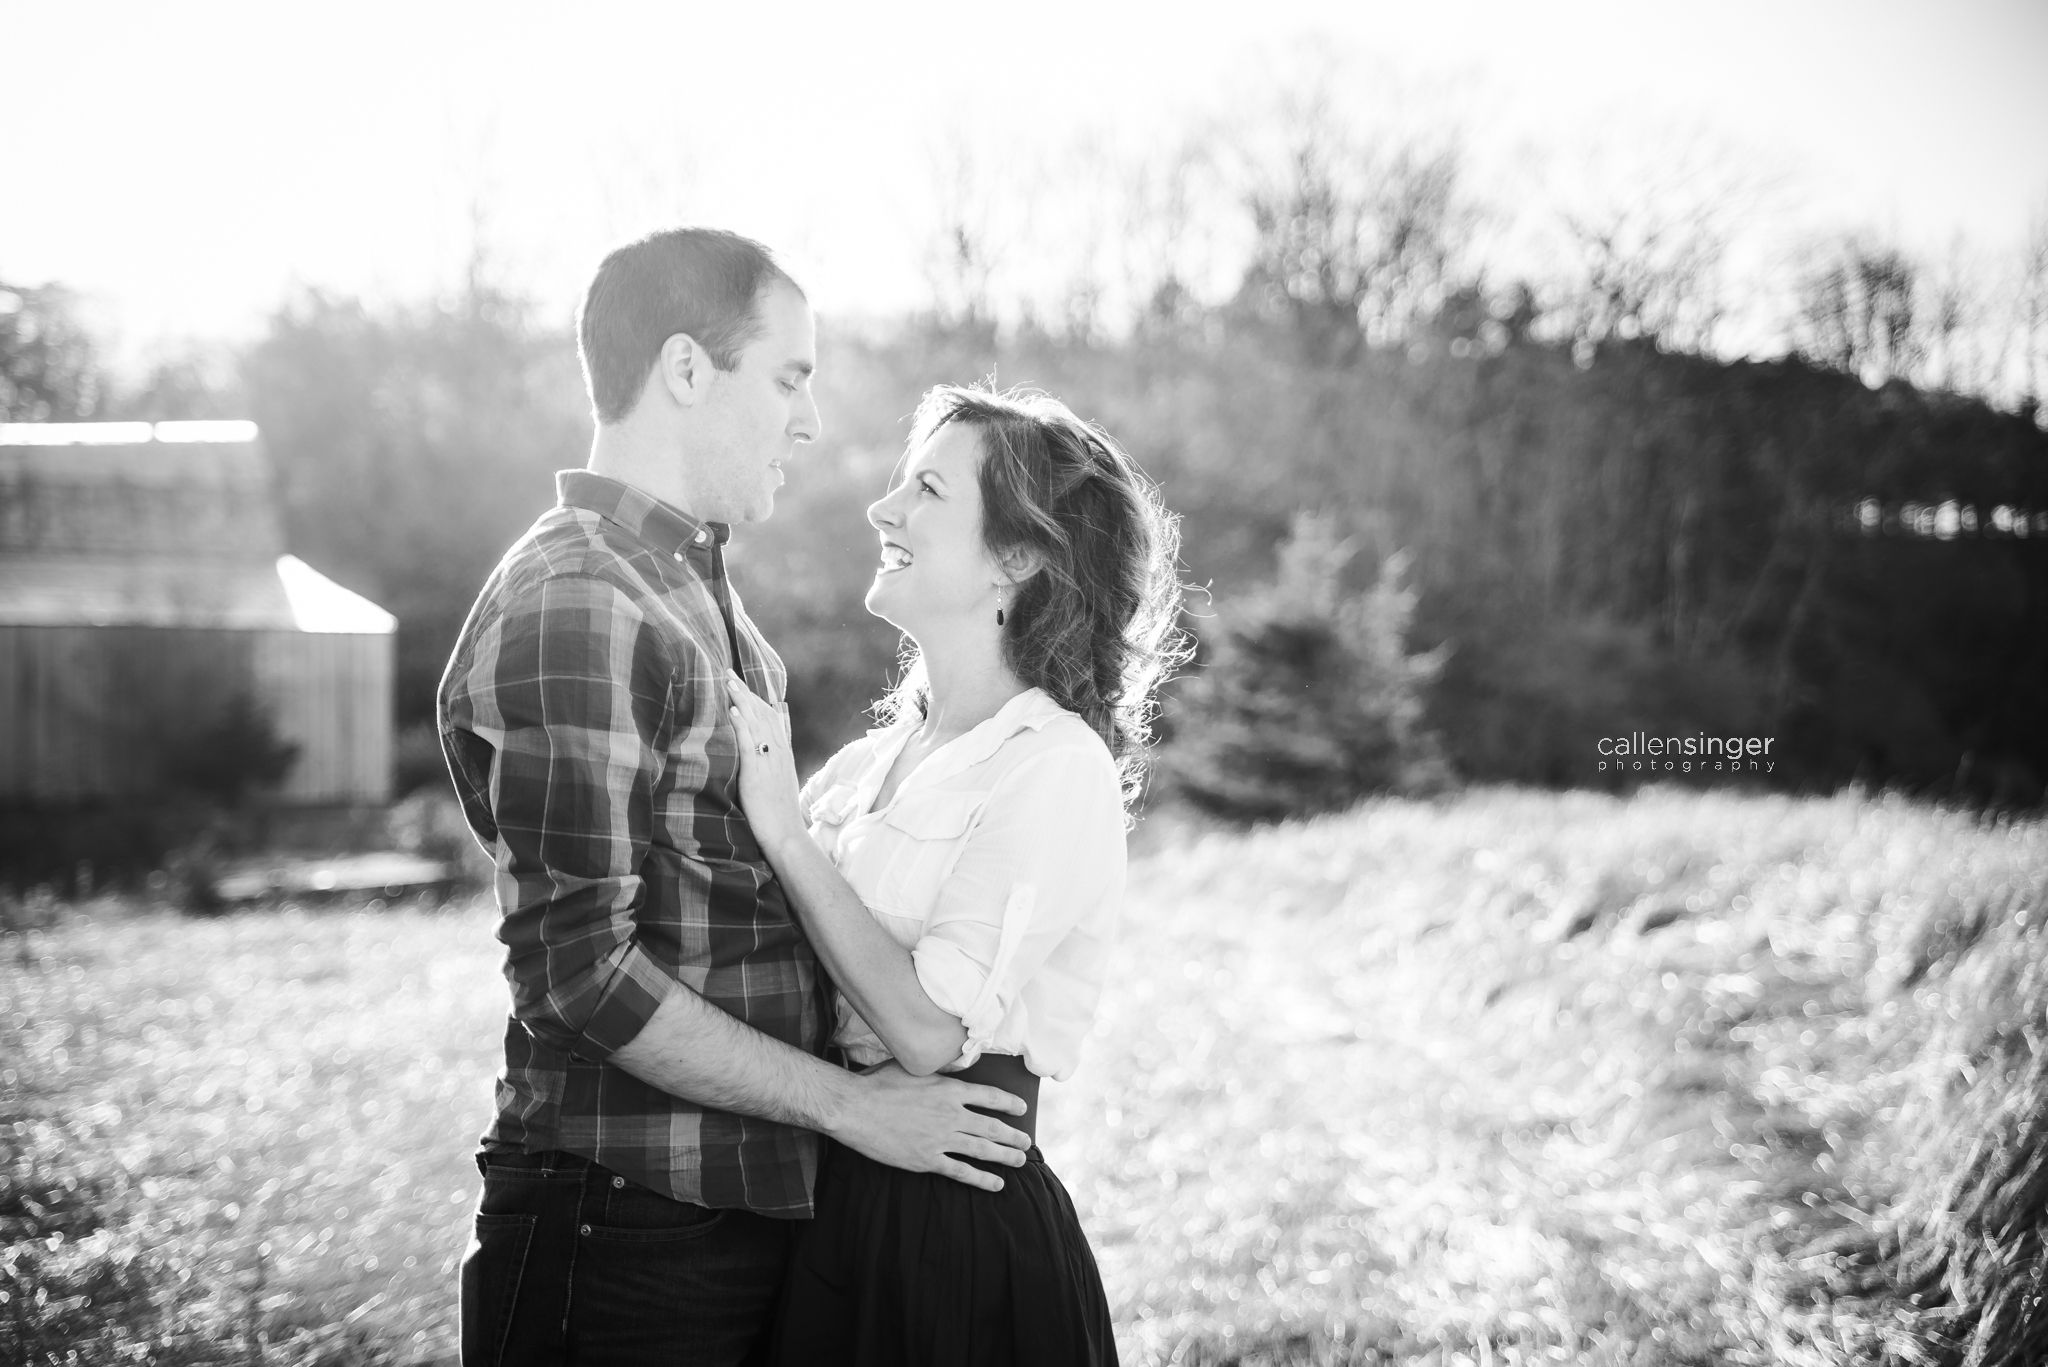 lunenburg single guys Faith focused dating and relationships browse profiles & photos of catholic singles join catholicmatchcom, the clear leader in online dating for catholics with more catholic singles than any other catholic dating site.